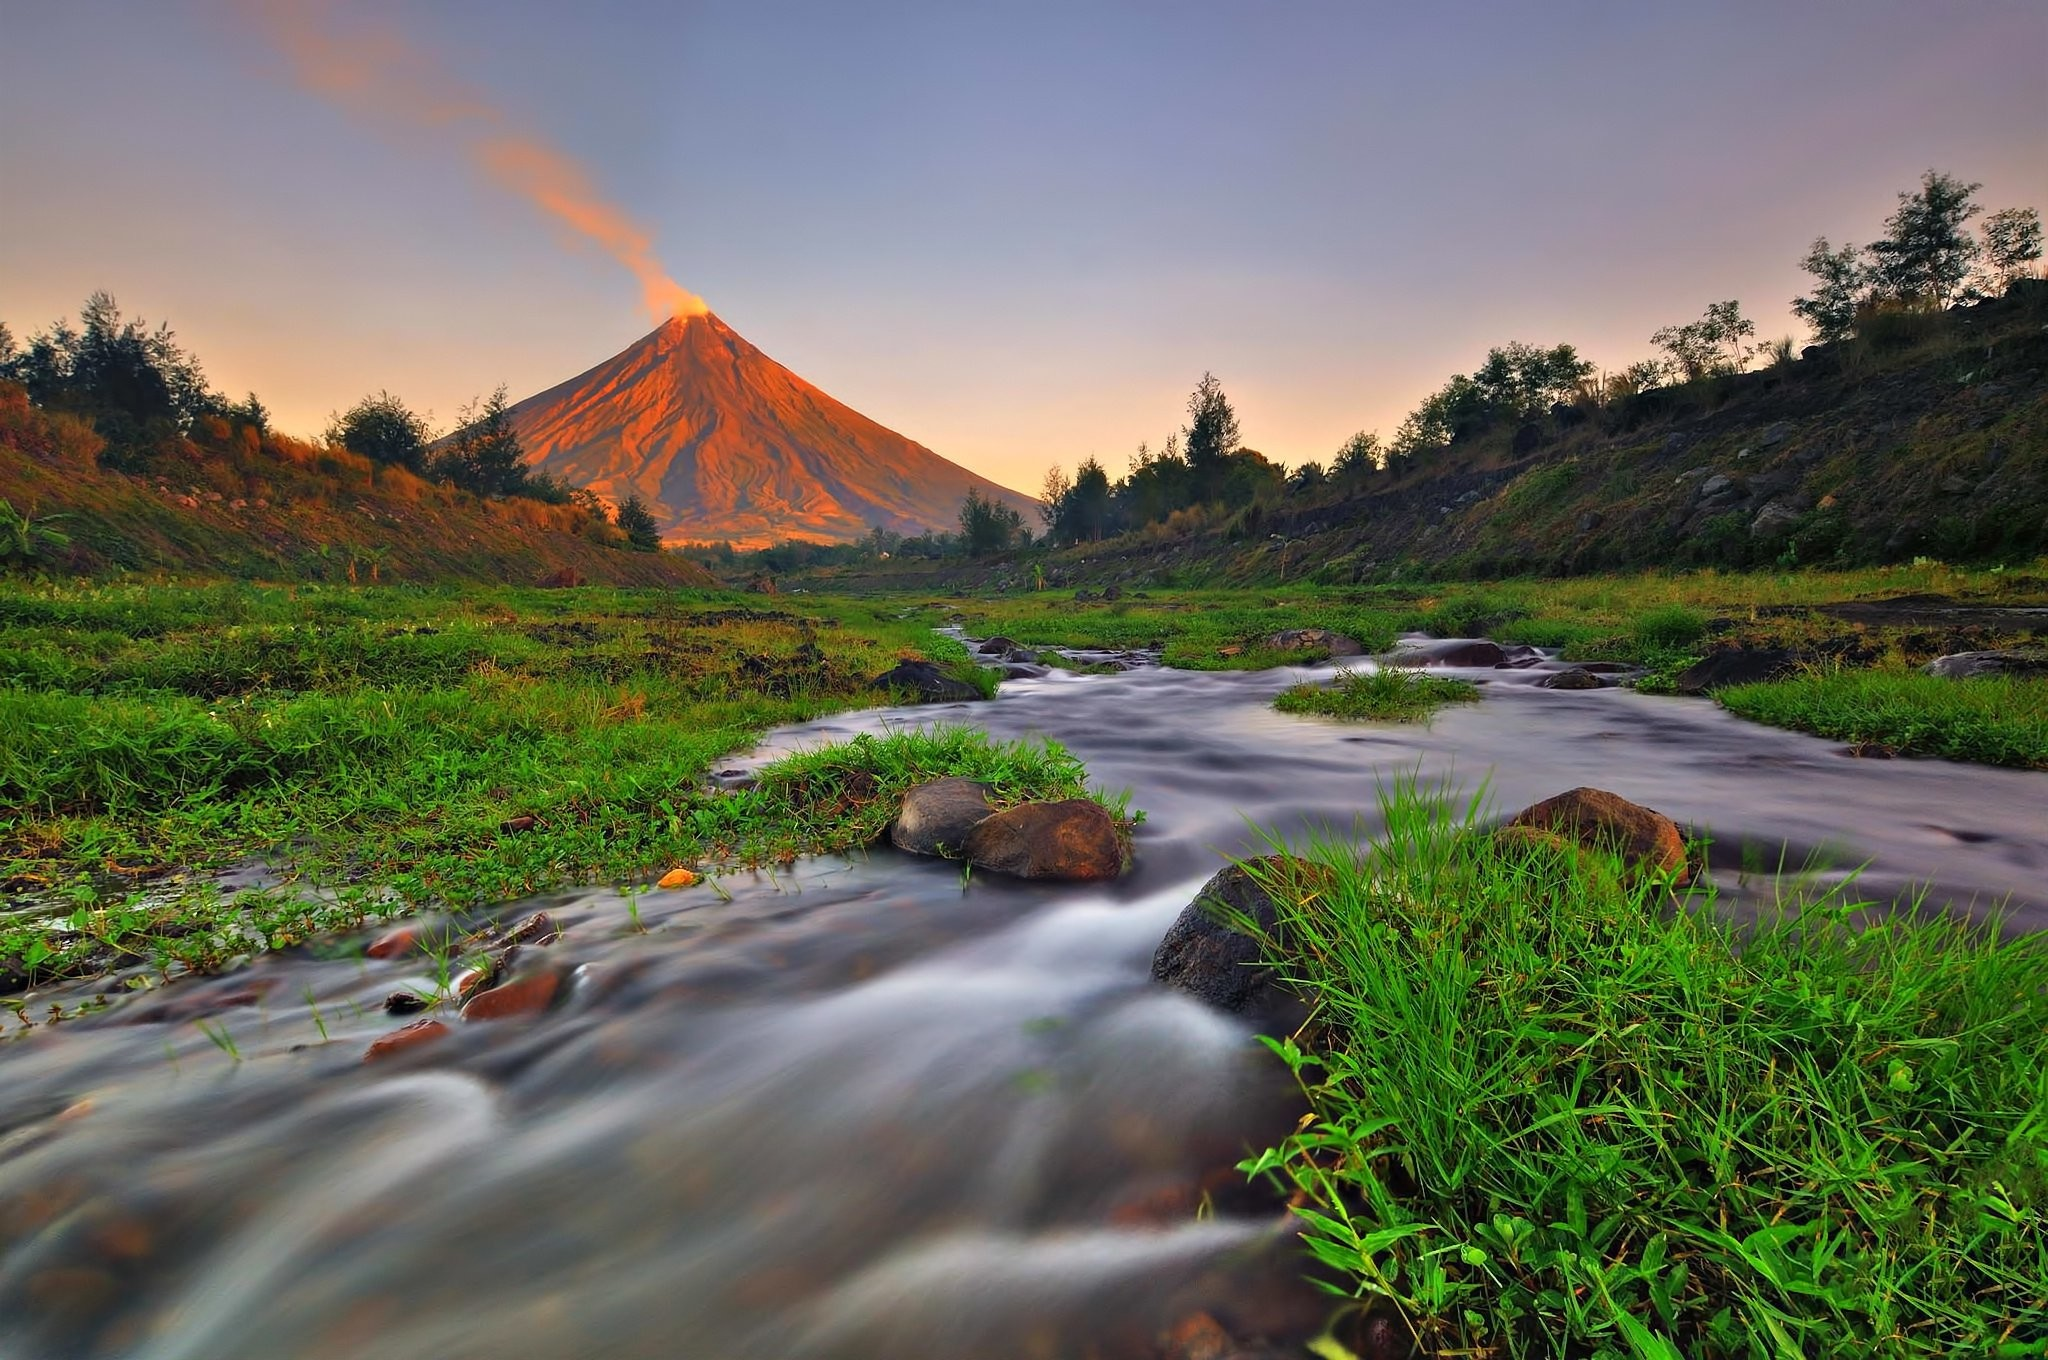 2048x1360 mayon, mountain, grass, volcanolandscape, river, volcano, nature, macbook,  cool images, love,mobile, philippines, creek Wallpaper HD